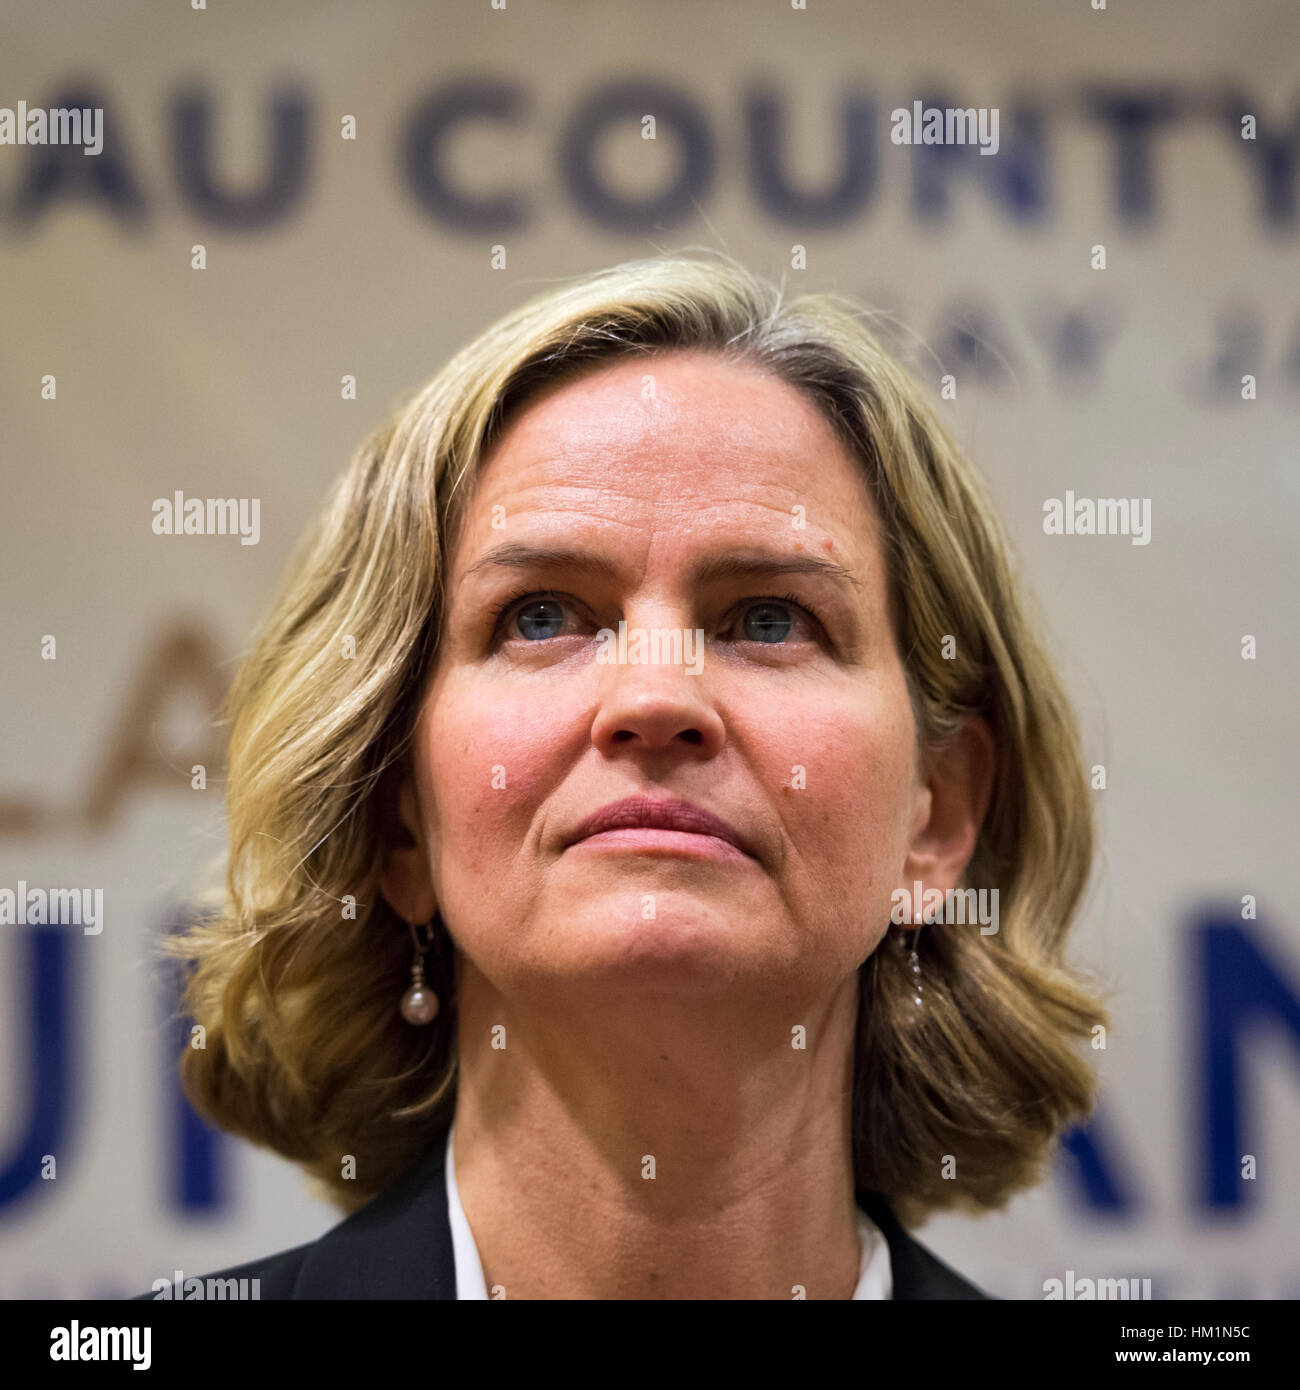 New York, USA. 30th Jan, 2017. Nassau County Legislator Laura Curran (D-Baldwin), 48, candidate for Nassau County Stock Photo